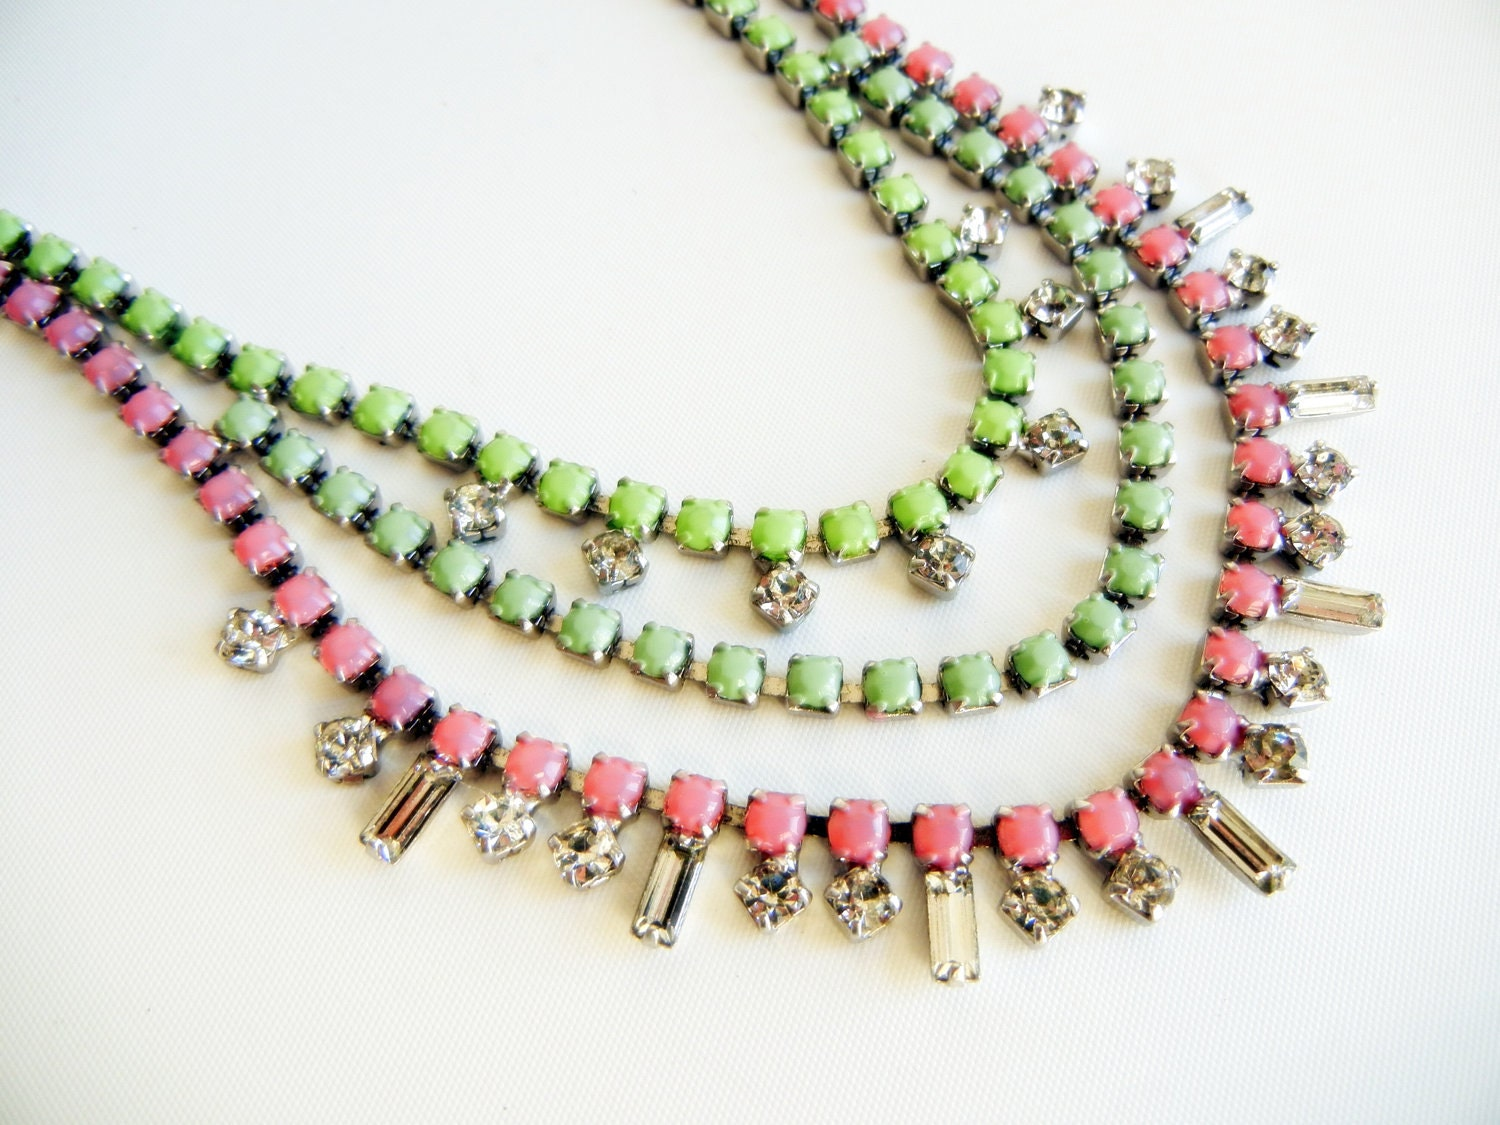 Vintage 1950s One Of A Kind Hand Painted Pale Pink and Mint Rhinestone Necklace